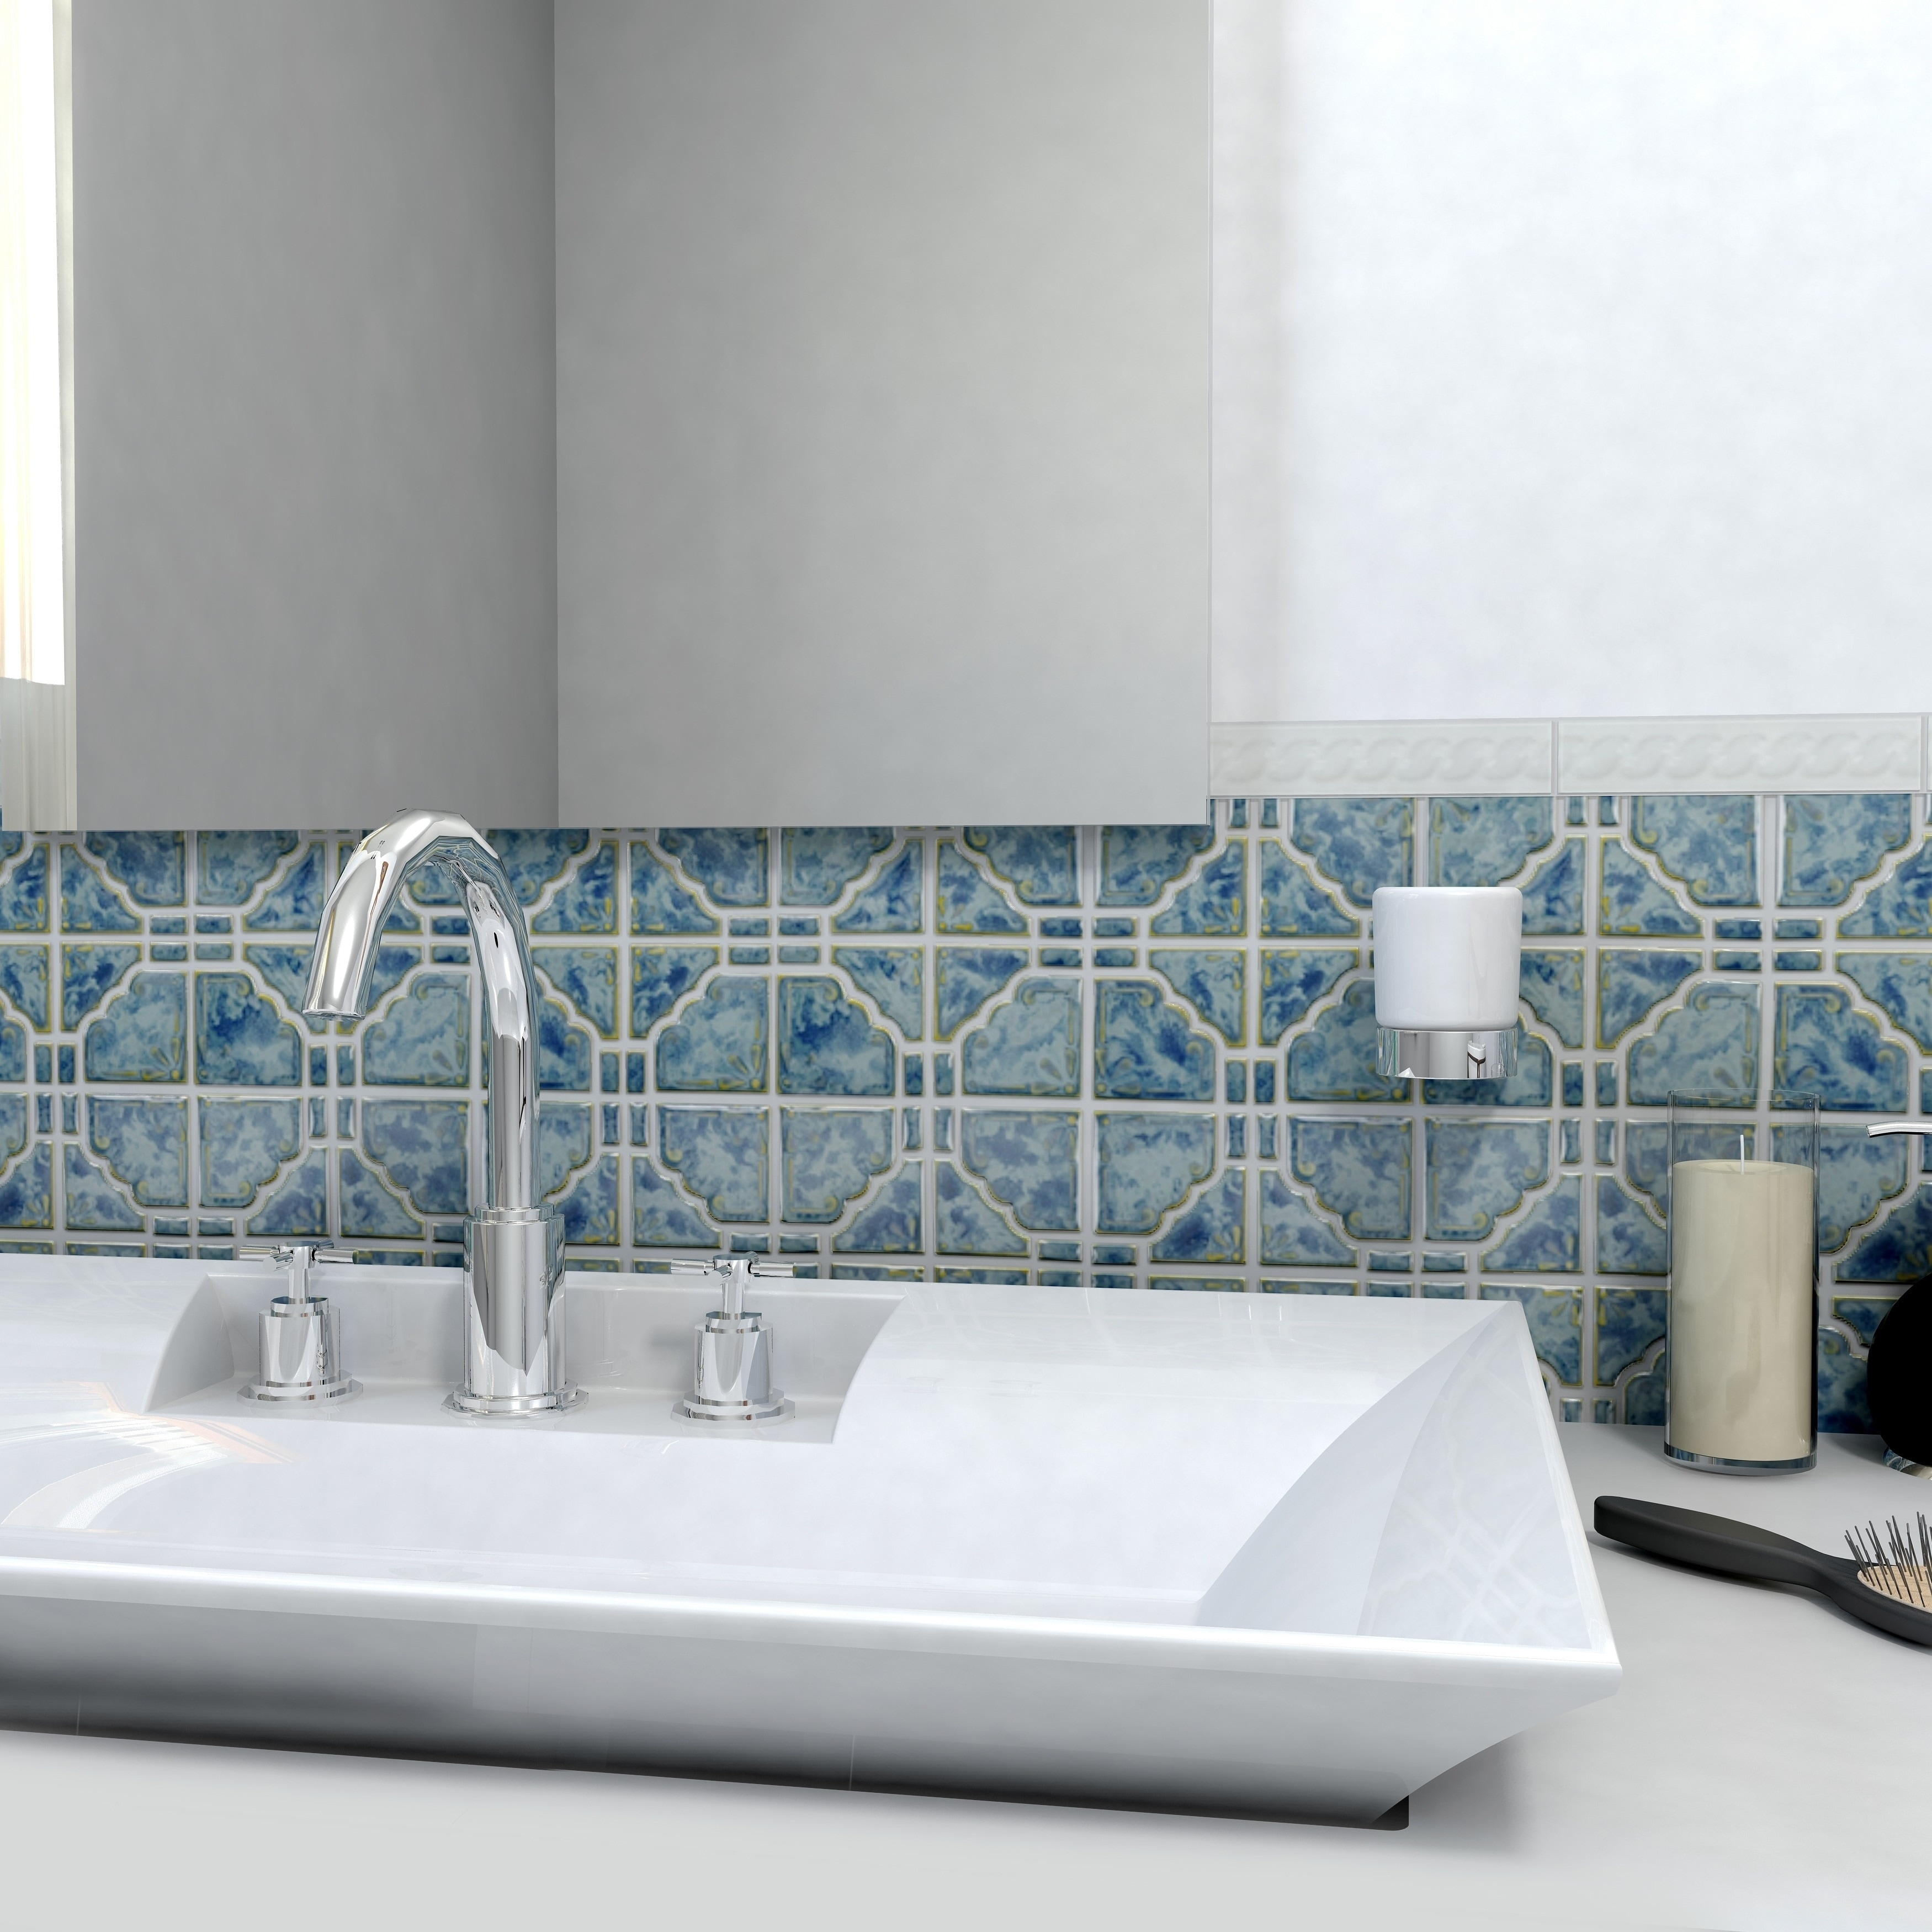 Patterned Tile | Find Great Home Improvement Deals Shopping at ...